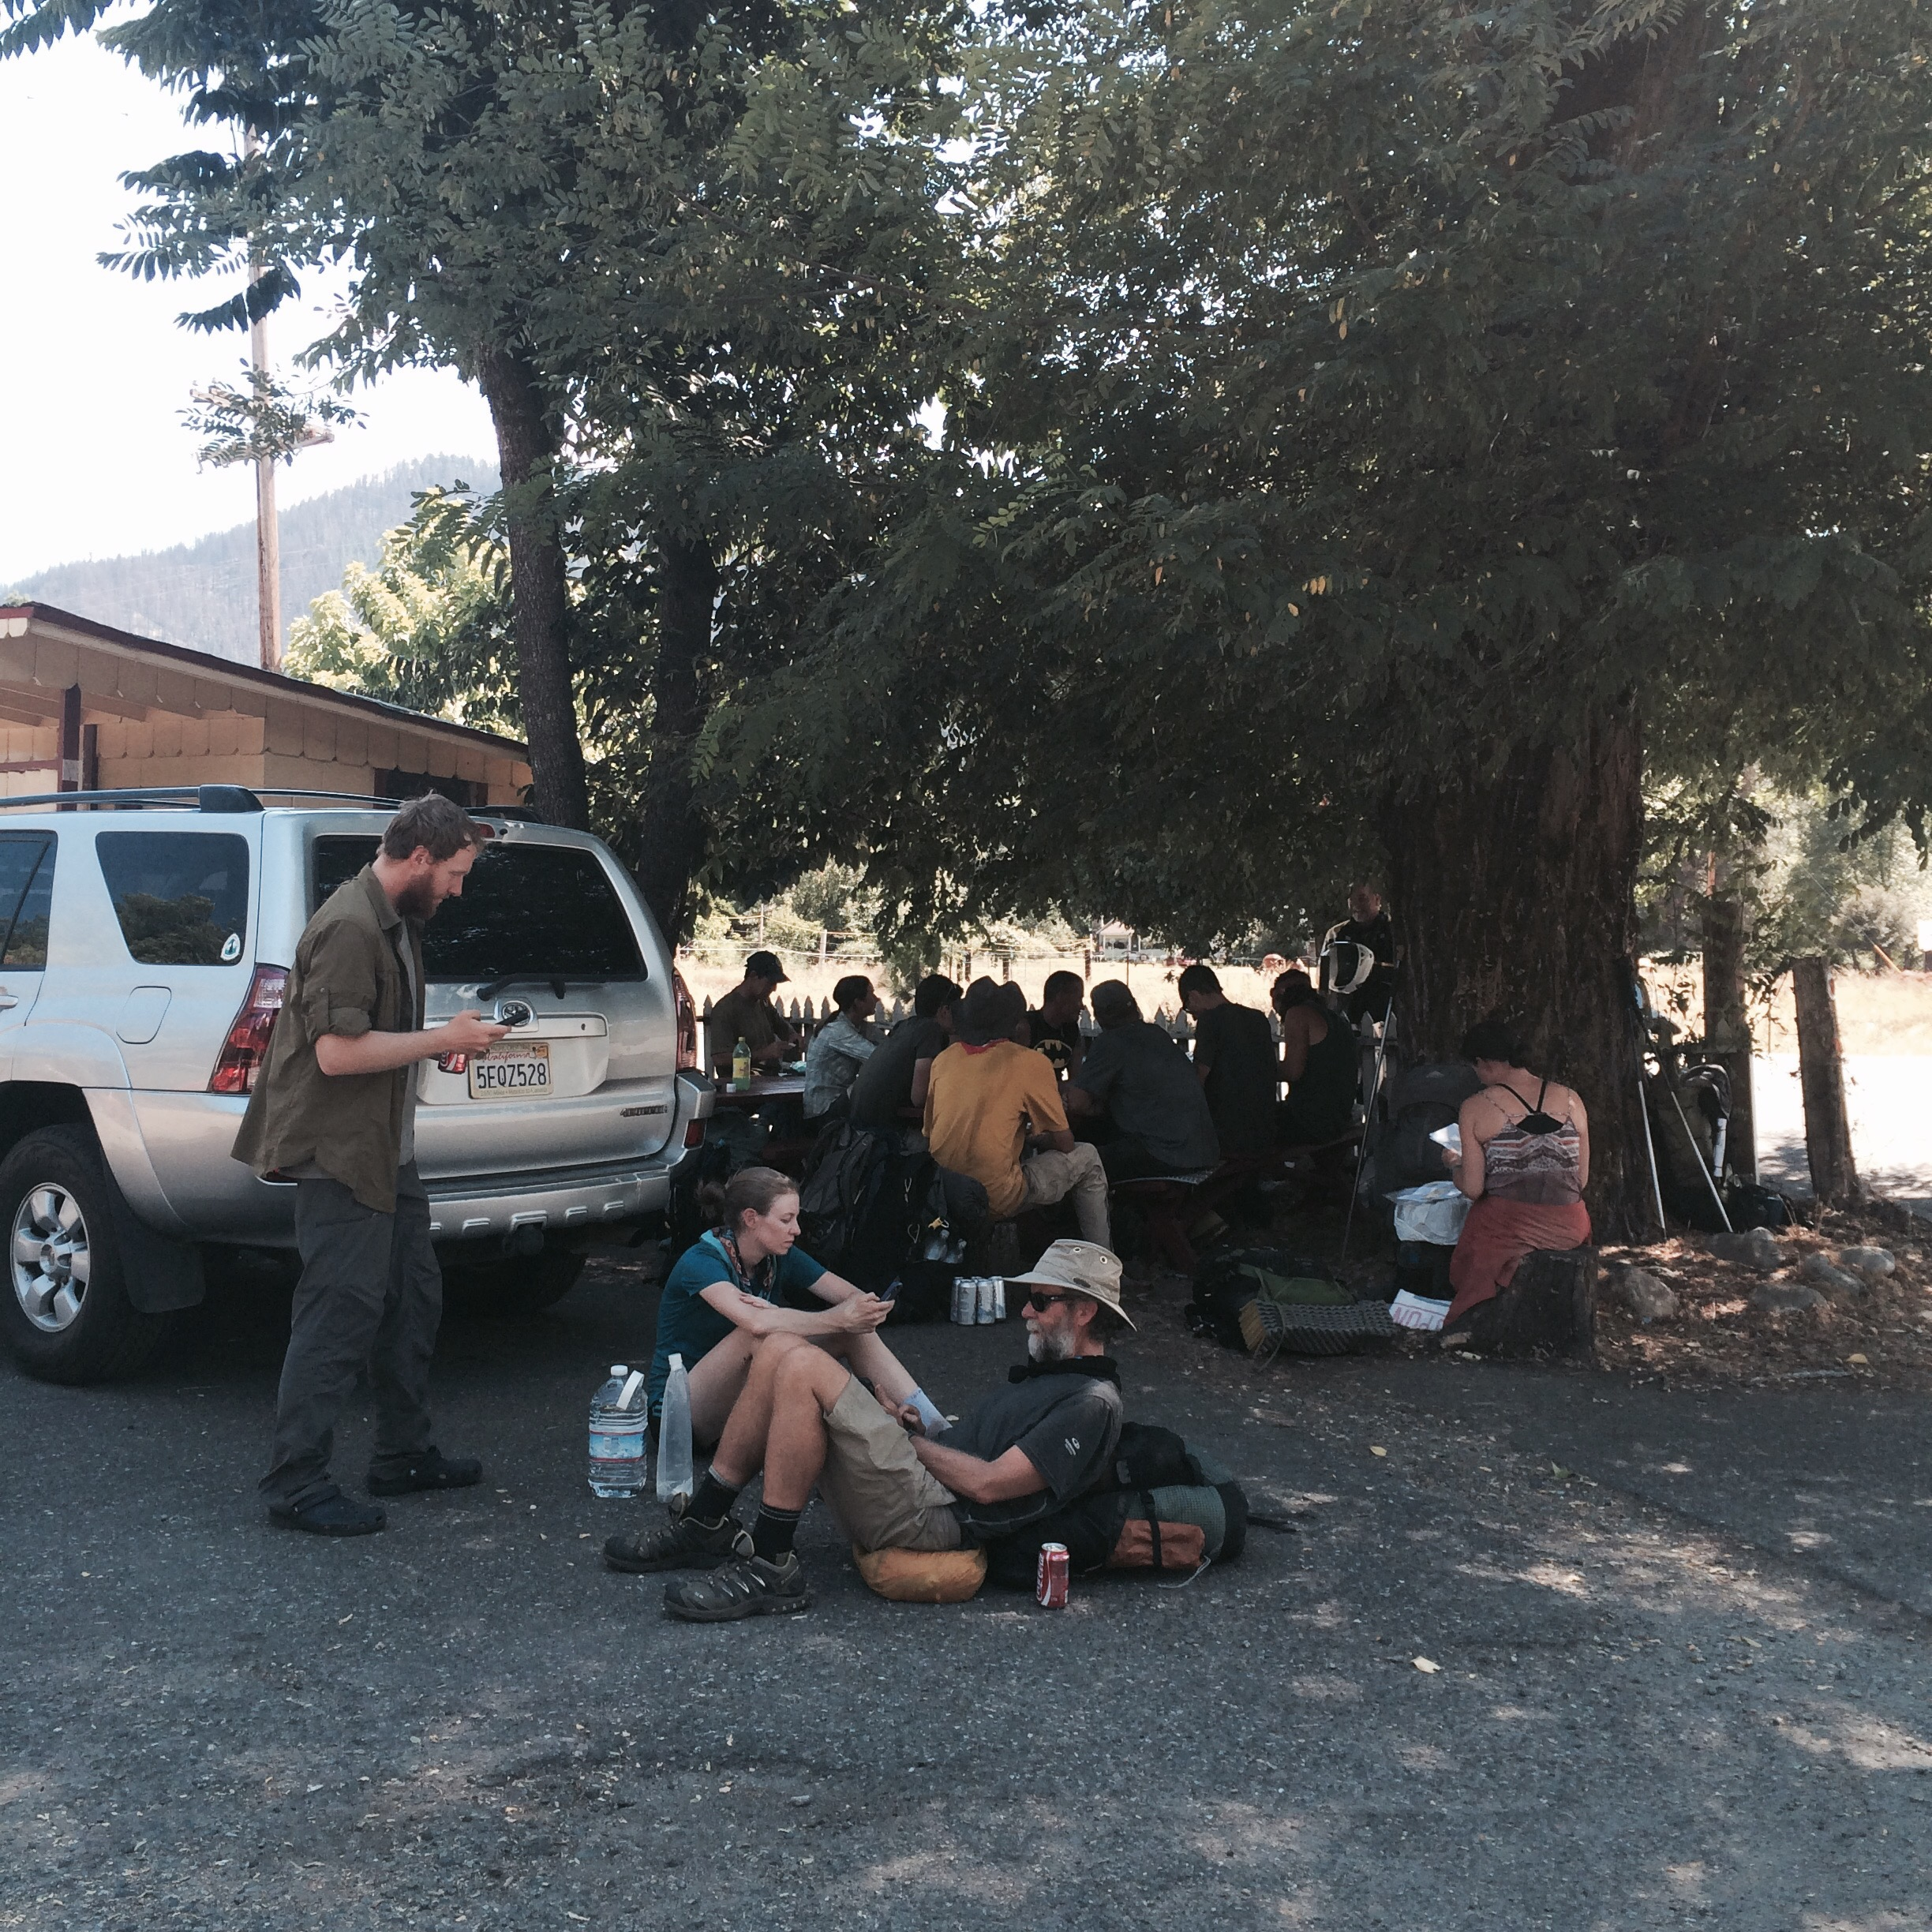 Hikers waiting out the heat outside the Seiad Cafe